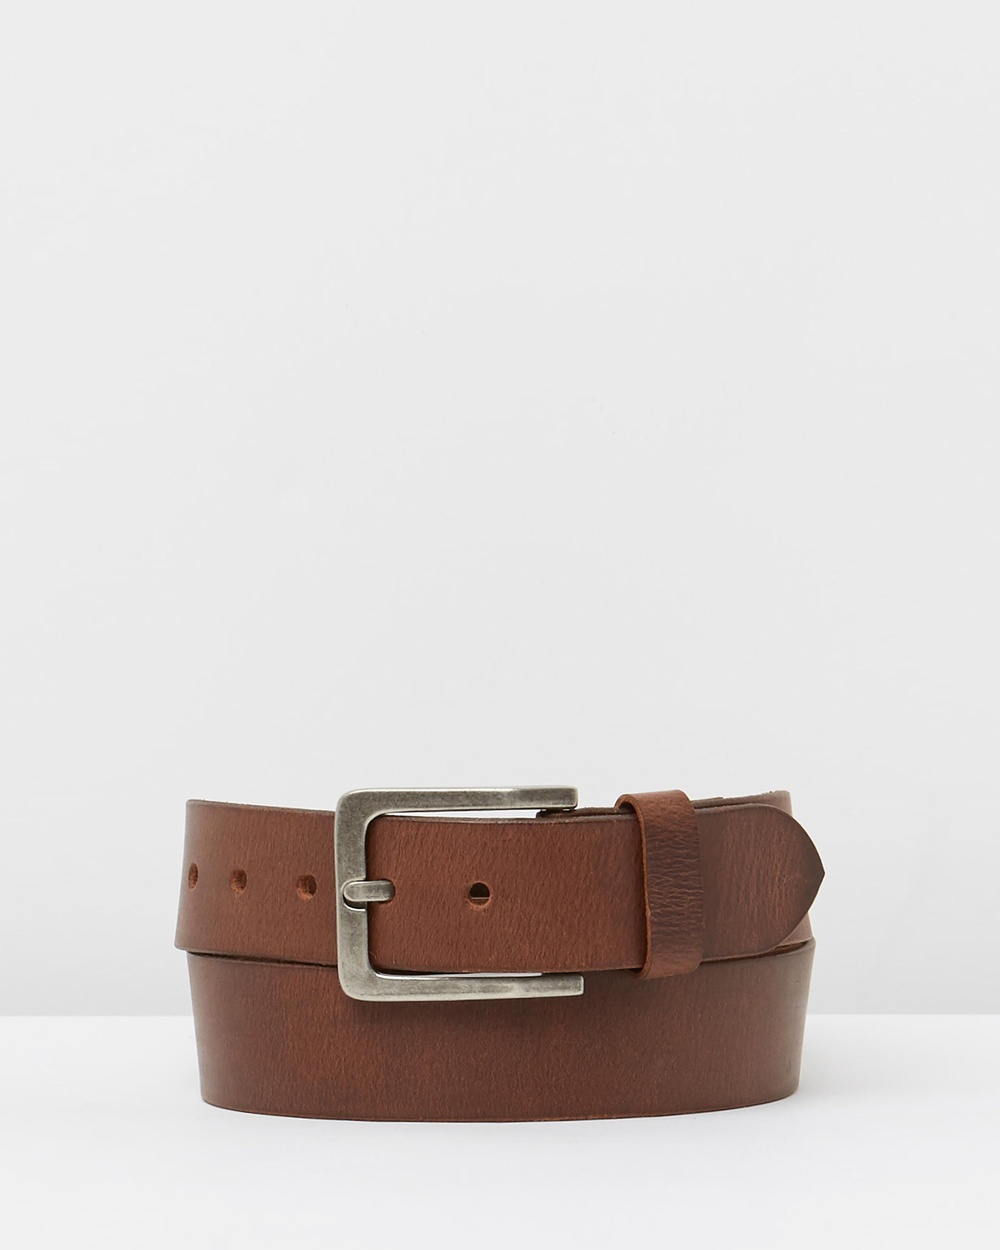 Loop Leather Co Billy Basic Belts Tan